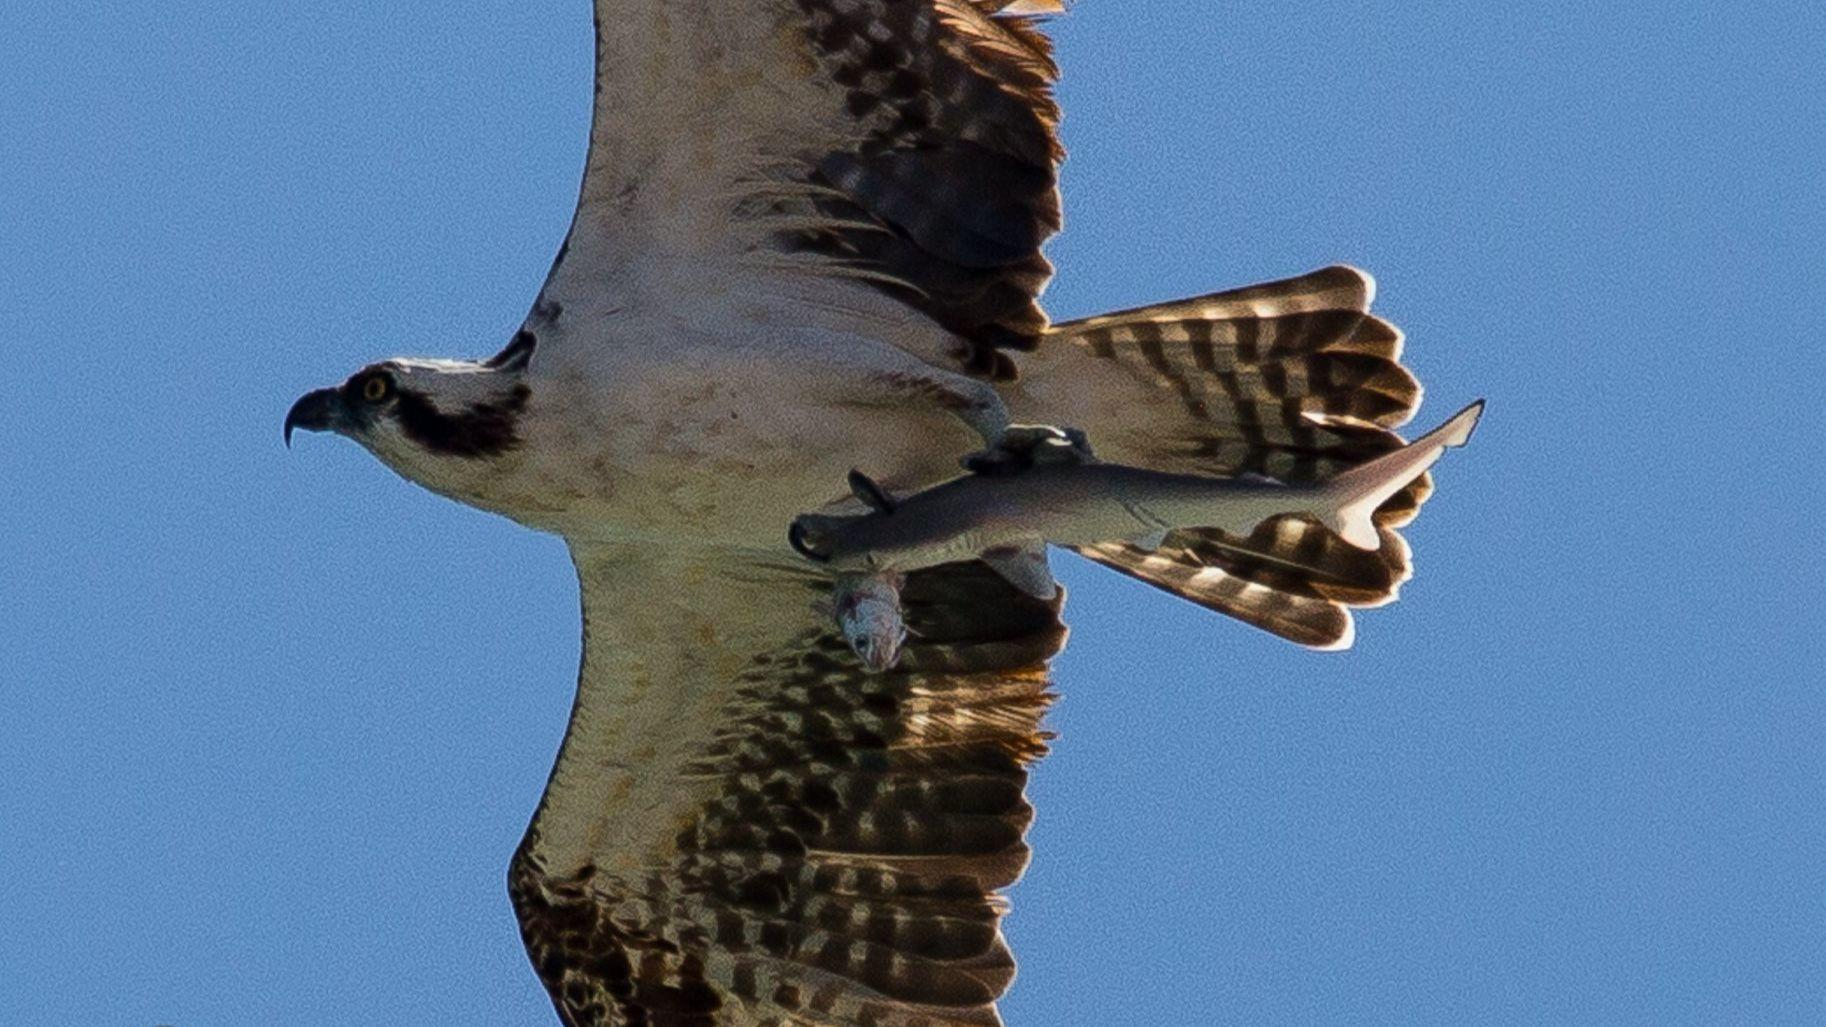 Photographer captures one in a trillion image of bird carrying a photographer captures one in a trillion image of bird carrying a shark carrying a fish sun sentinel thecheapjerseys Choice Image